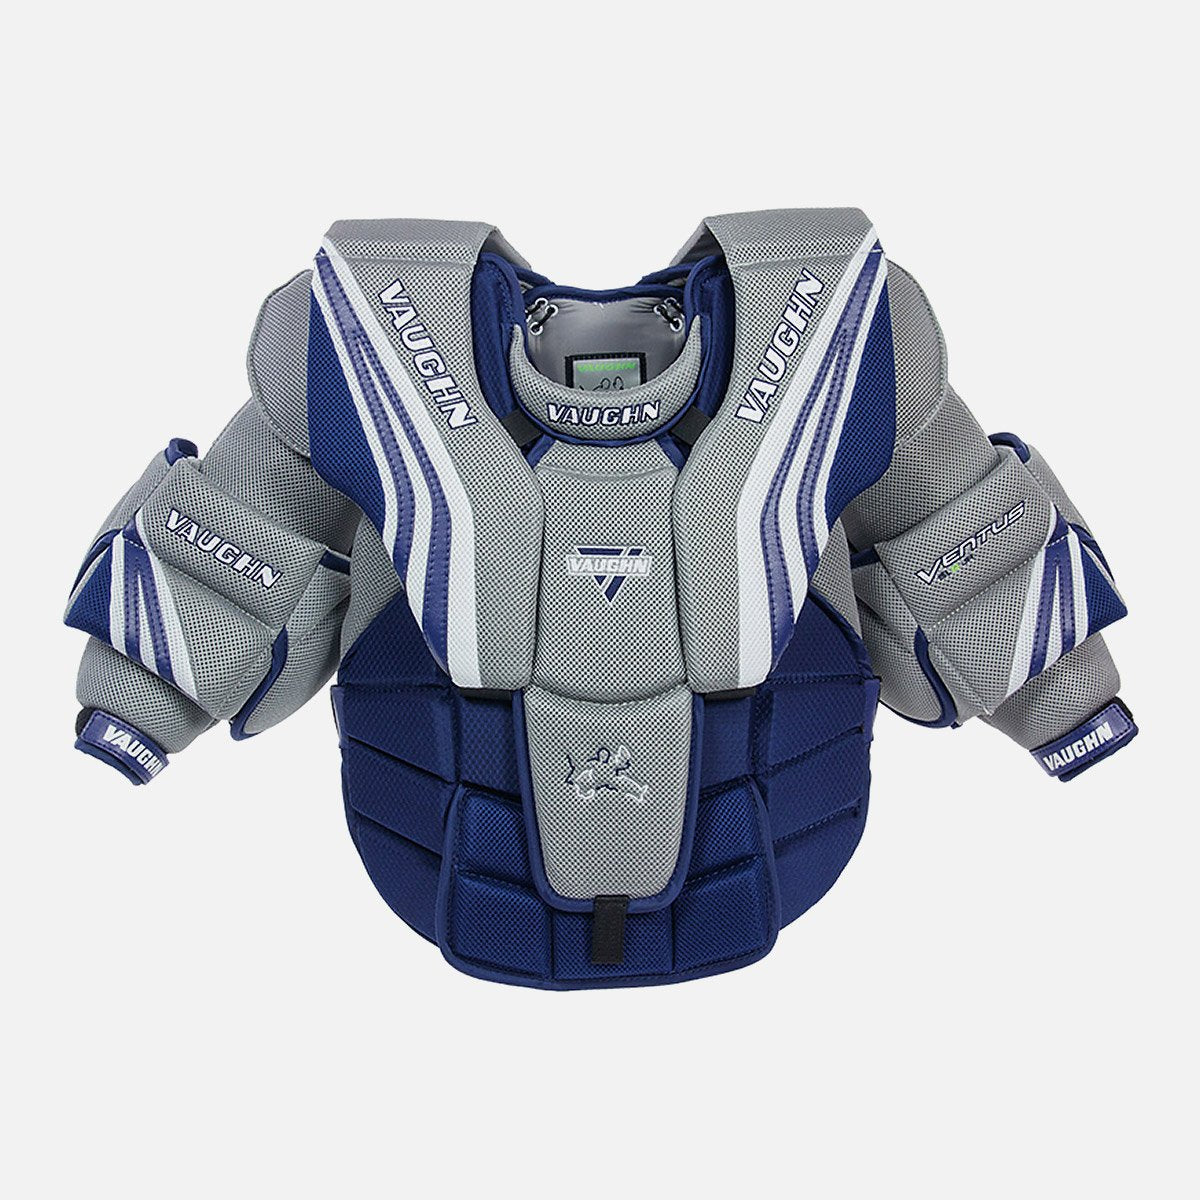 Vaughn Ventus SLR Junior Chest & Arm Protectors